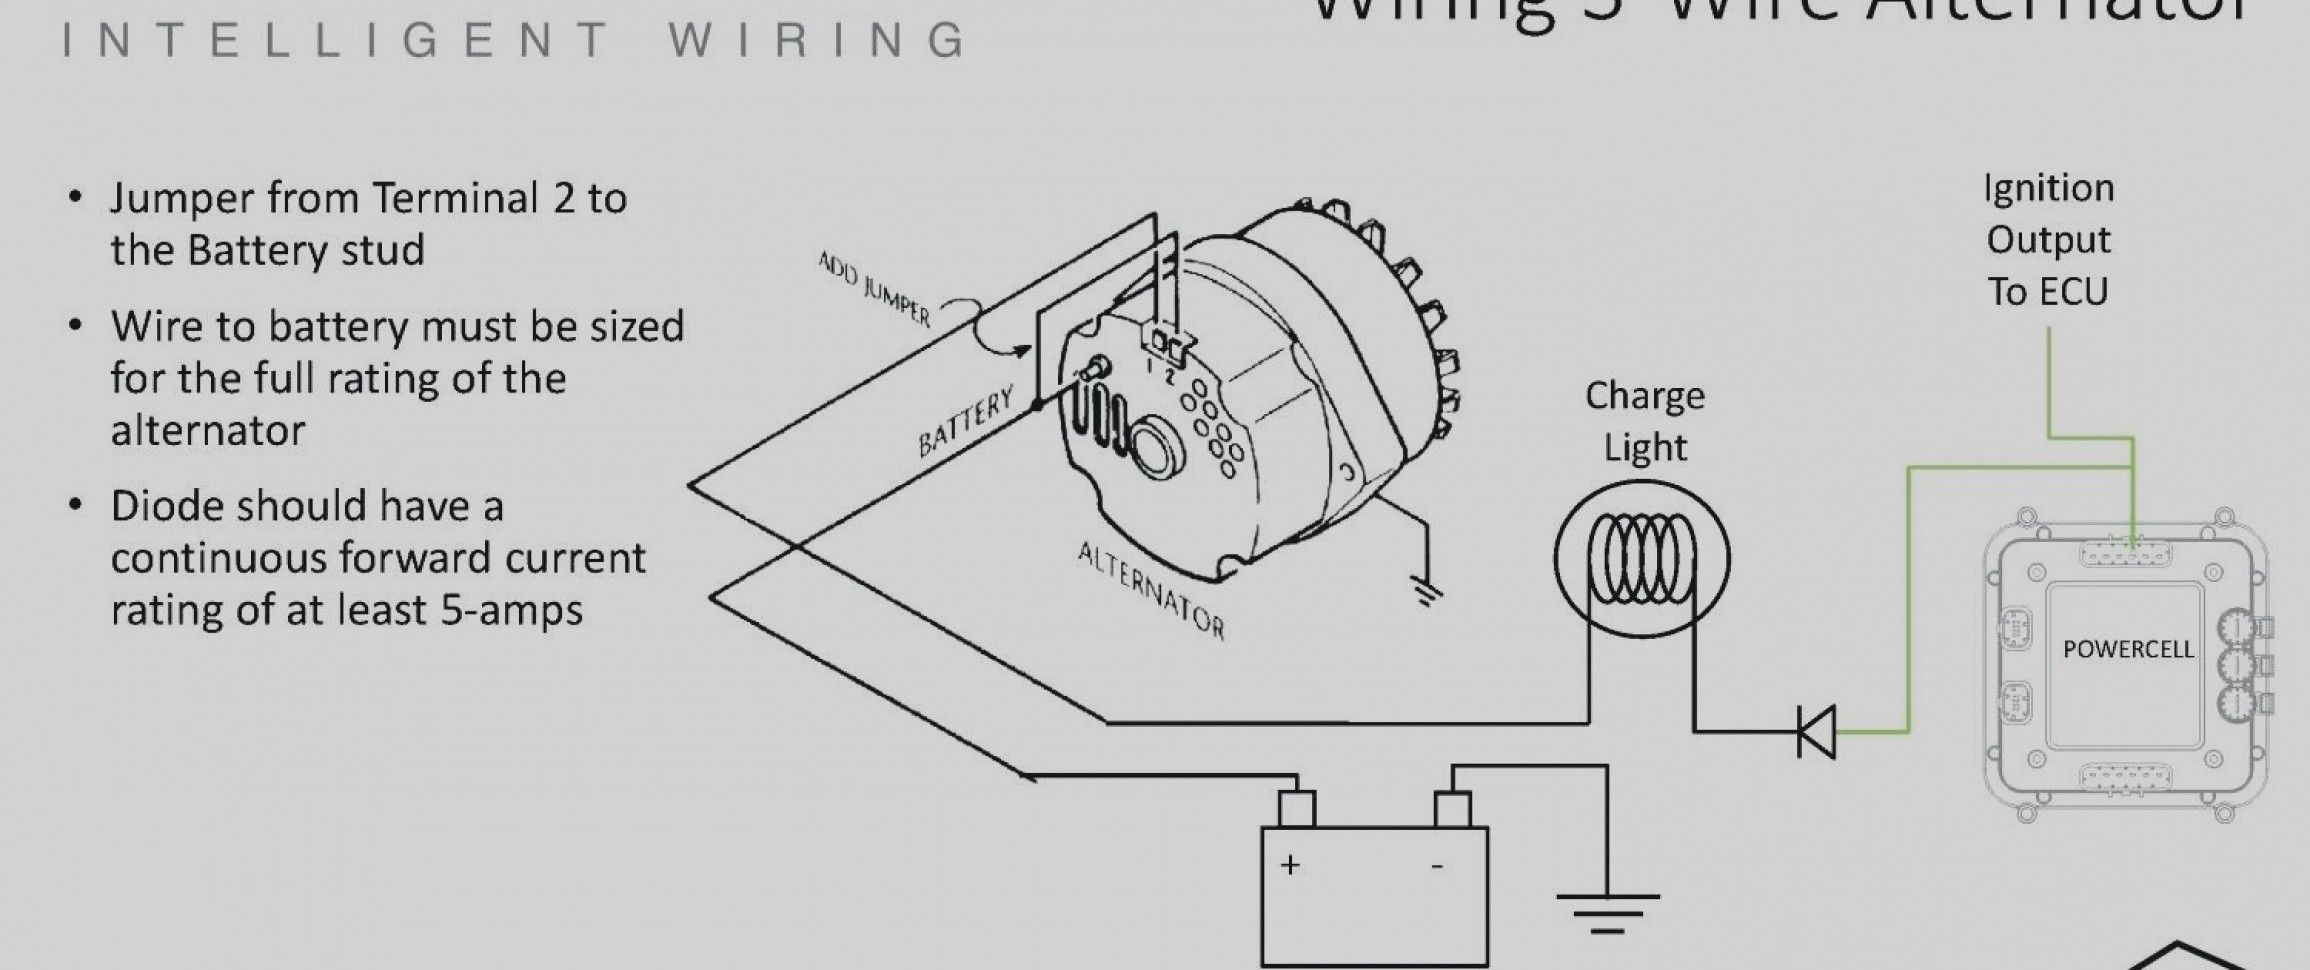 Unique Wiring Diagram 12v Alternator #diagrams #